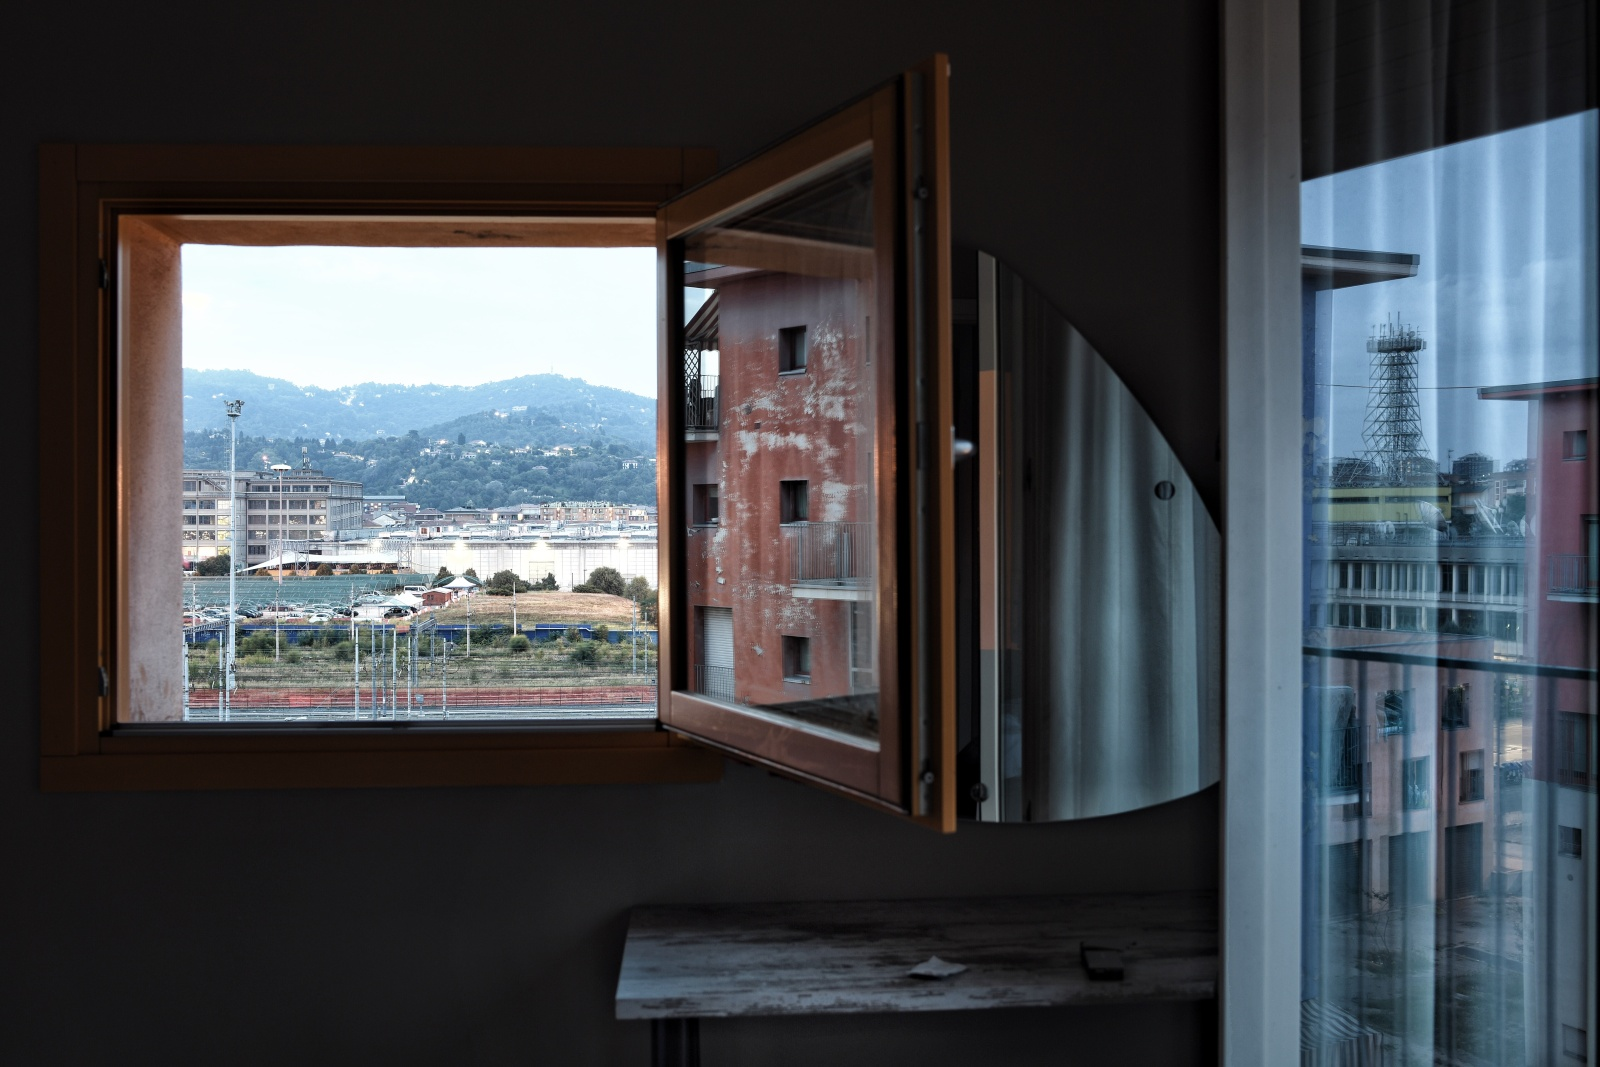 Turin, Italy, 2018. Clearance of squatters from the Olympic village